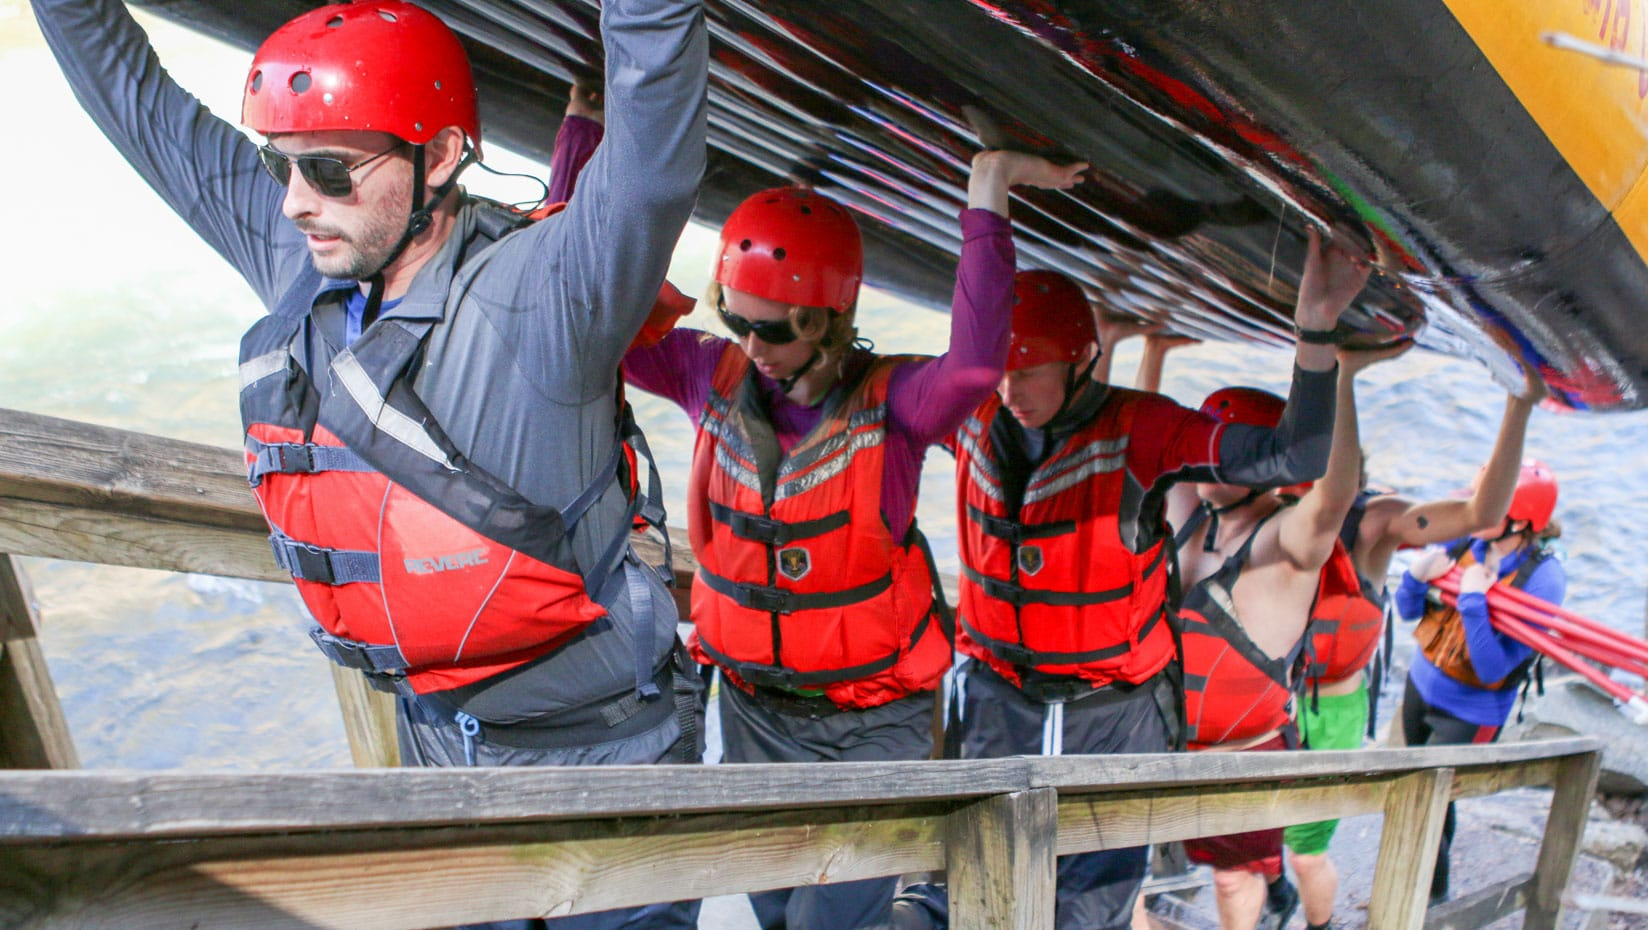 Carrying a boat up stairs during raft guide school